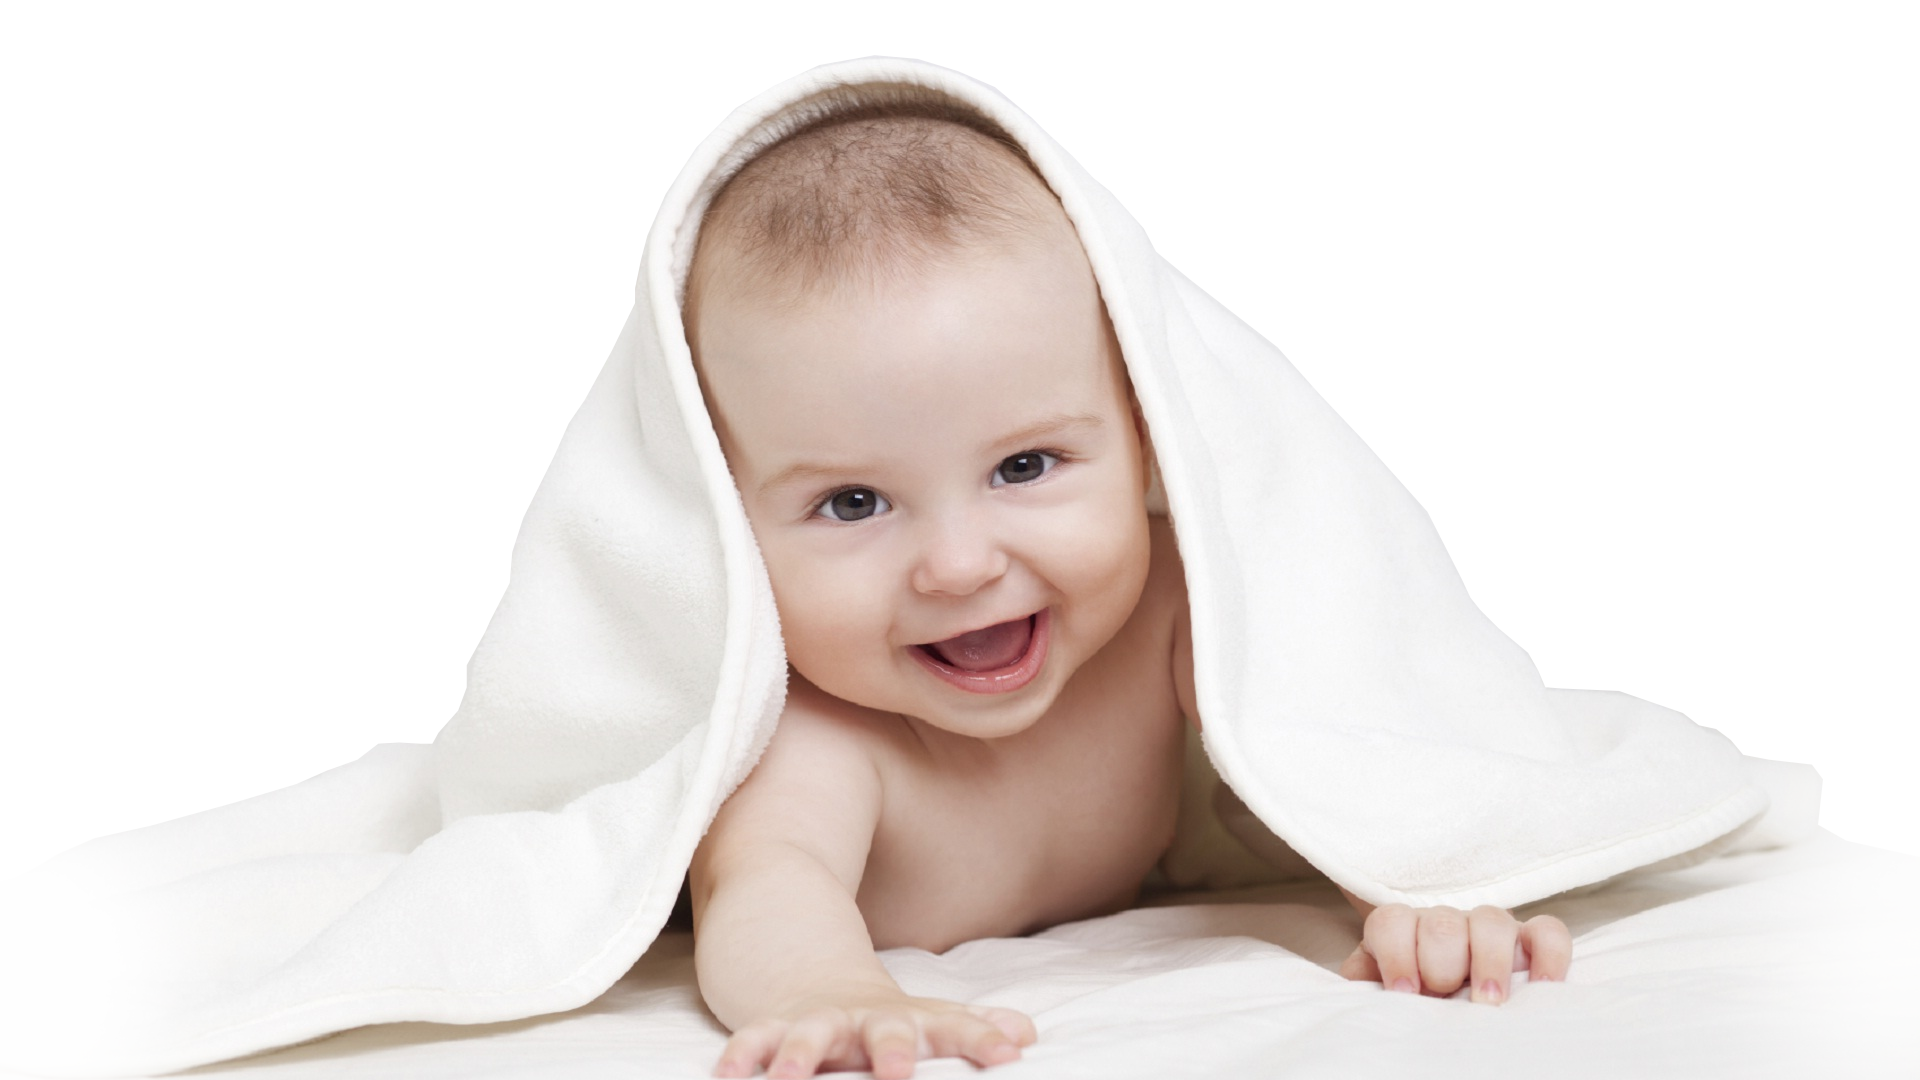 cute baby png image - purepng | free transparent cc0 png image library